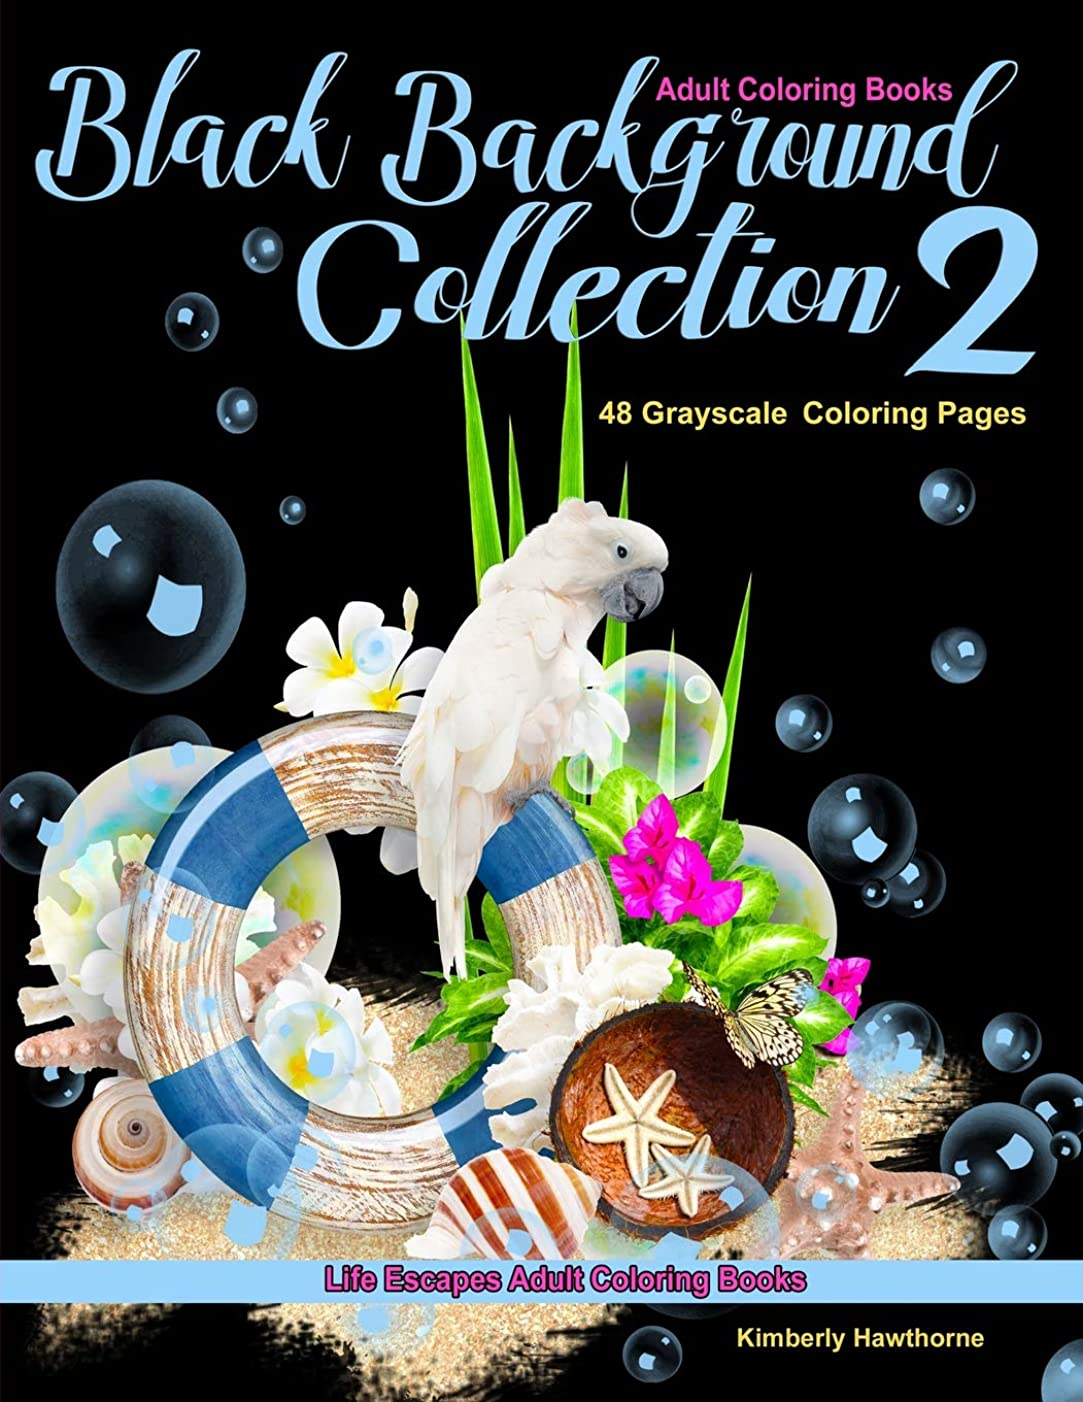 メドレー緊張する構成員Adult Coloring Books Black Backgrounds Collection 2: 48 Grayscale coloring pages of still life style images on solid black backgrounds